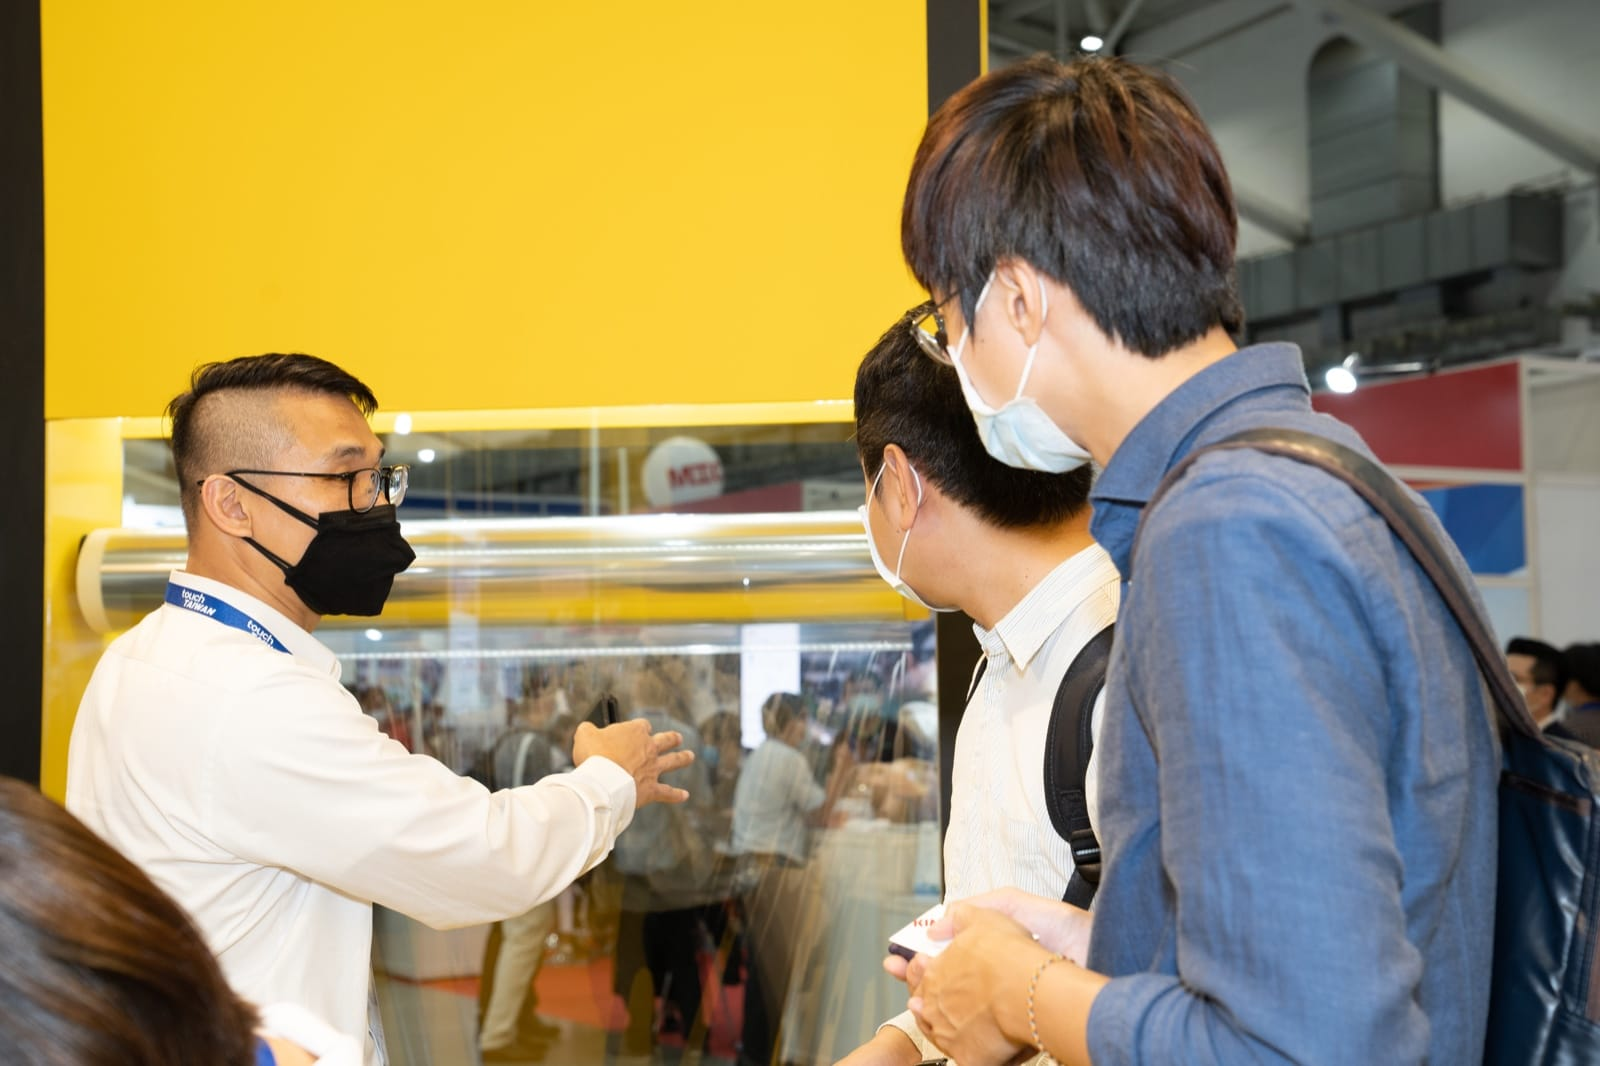 Parker Chen of Zymergen's Taiwan business development team shows two Touch Taiwan conferees our 1.3 m wide, 1 km long roll of Hyaline Z2